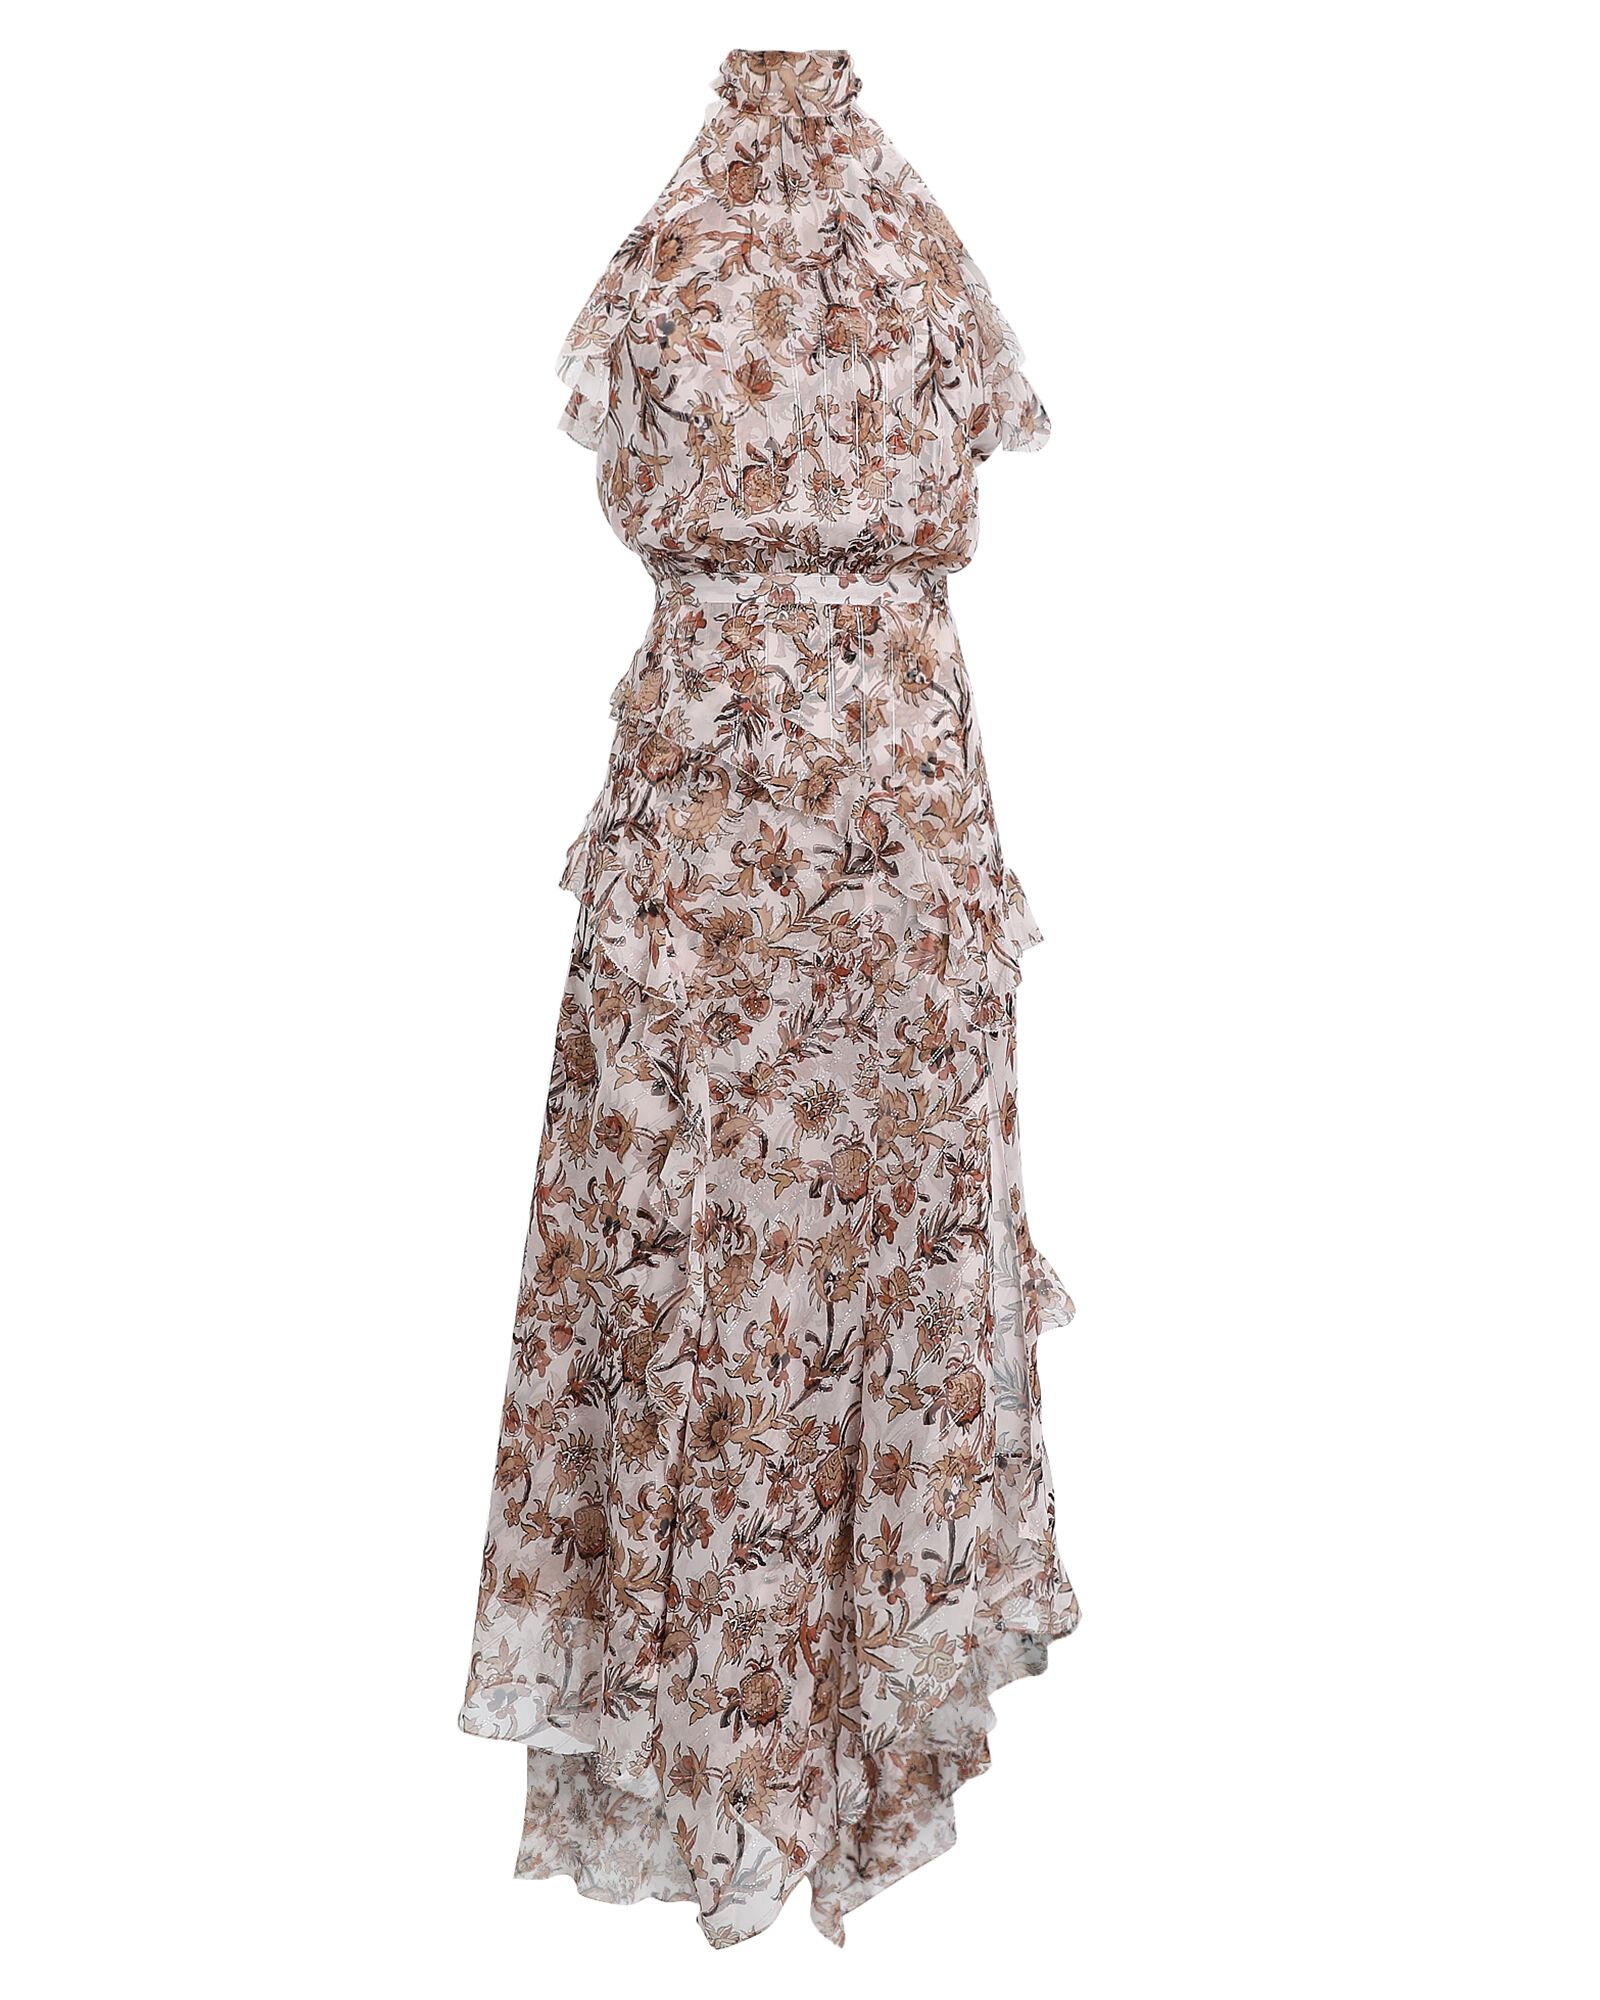 Kailey Ruffled Silk Floral Dress, IVORY/BEIGE, hi-res